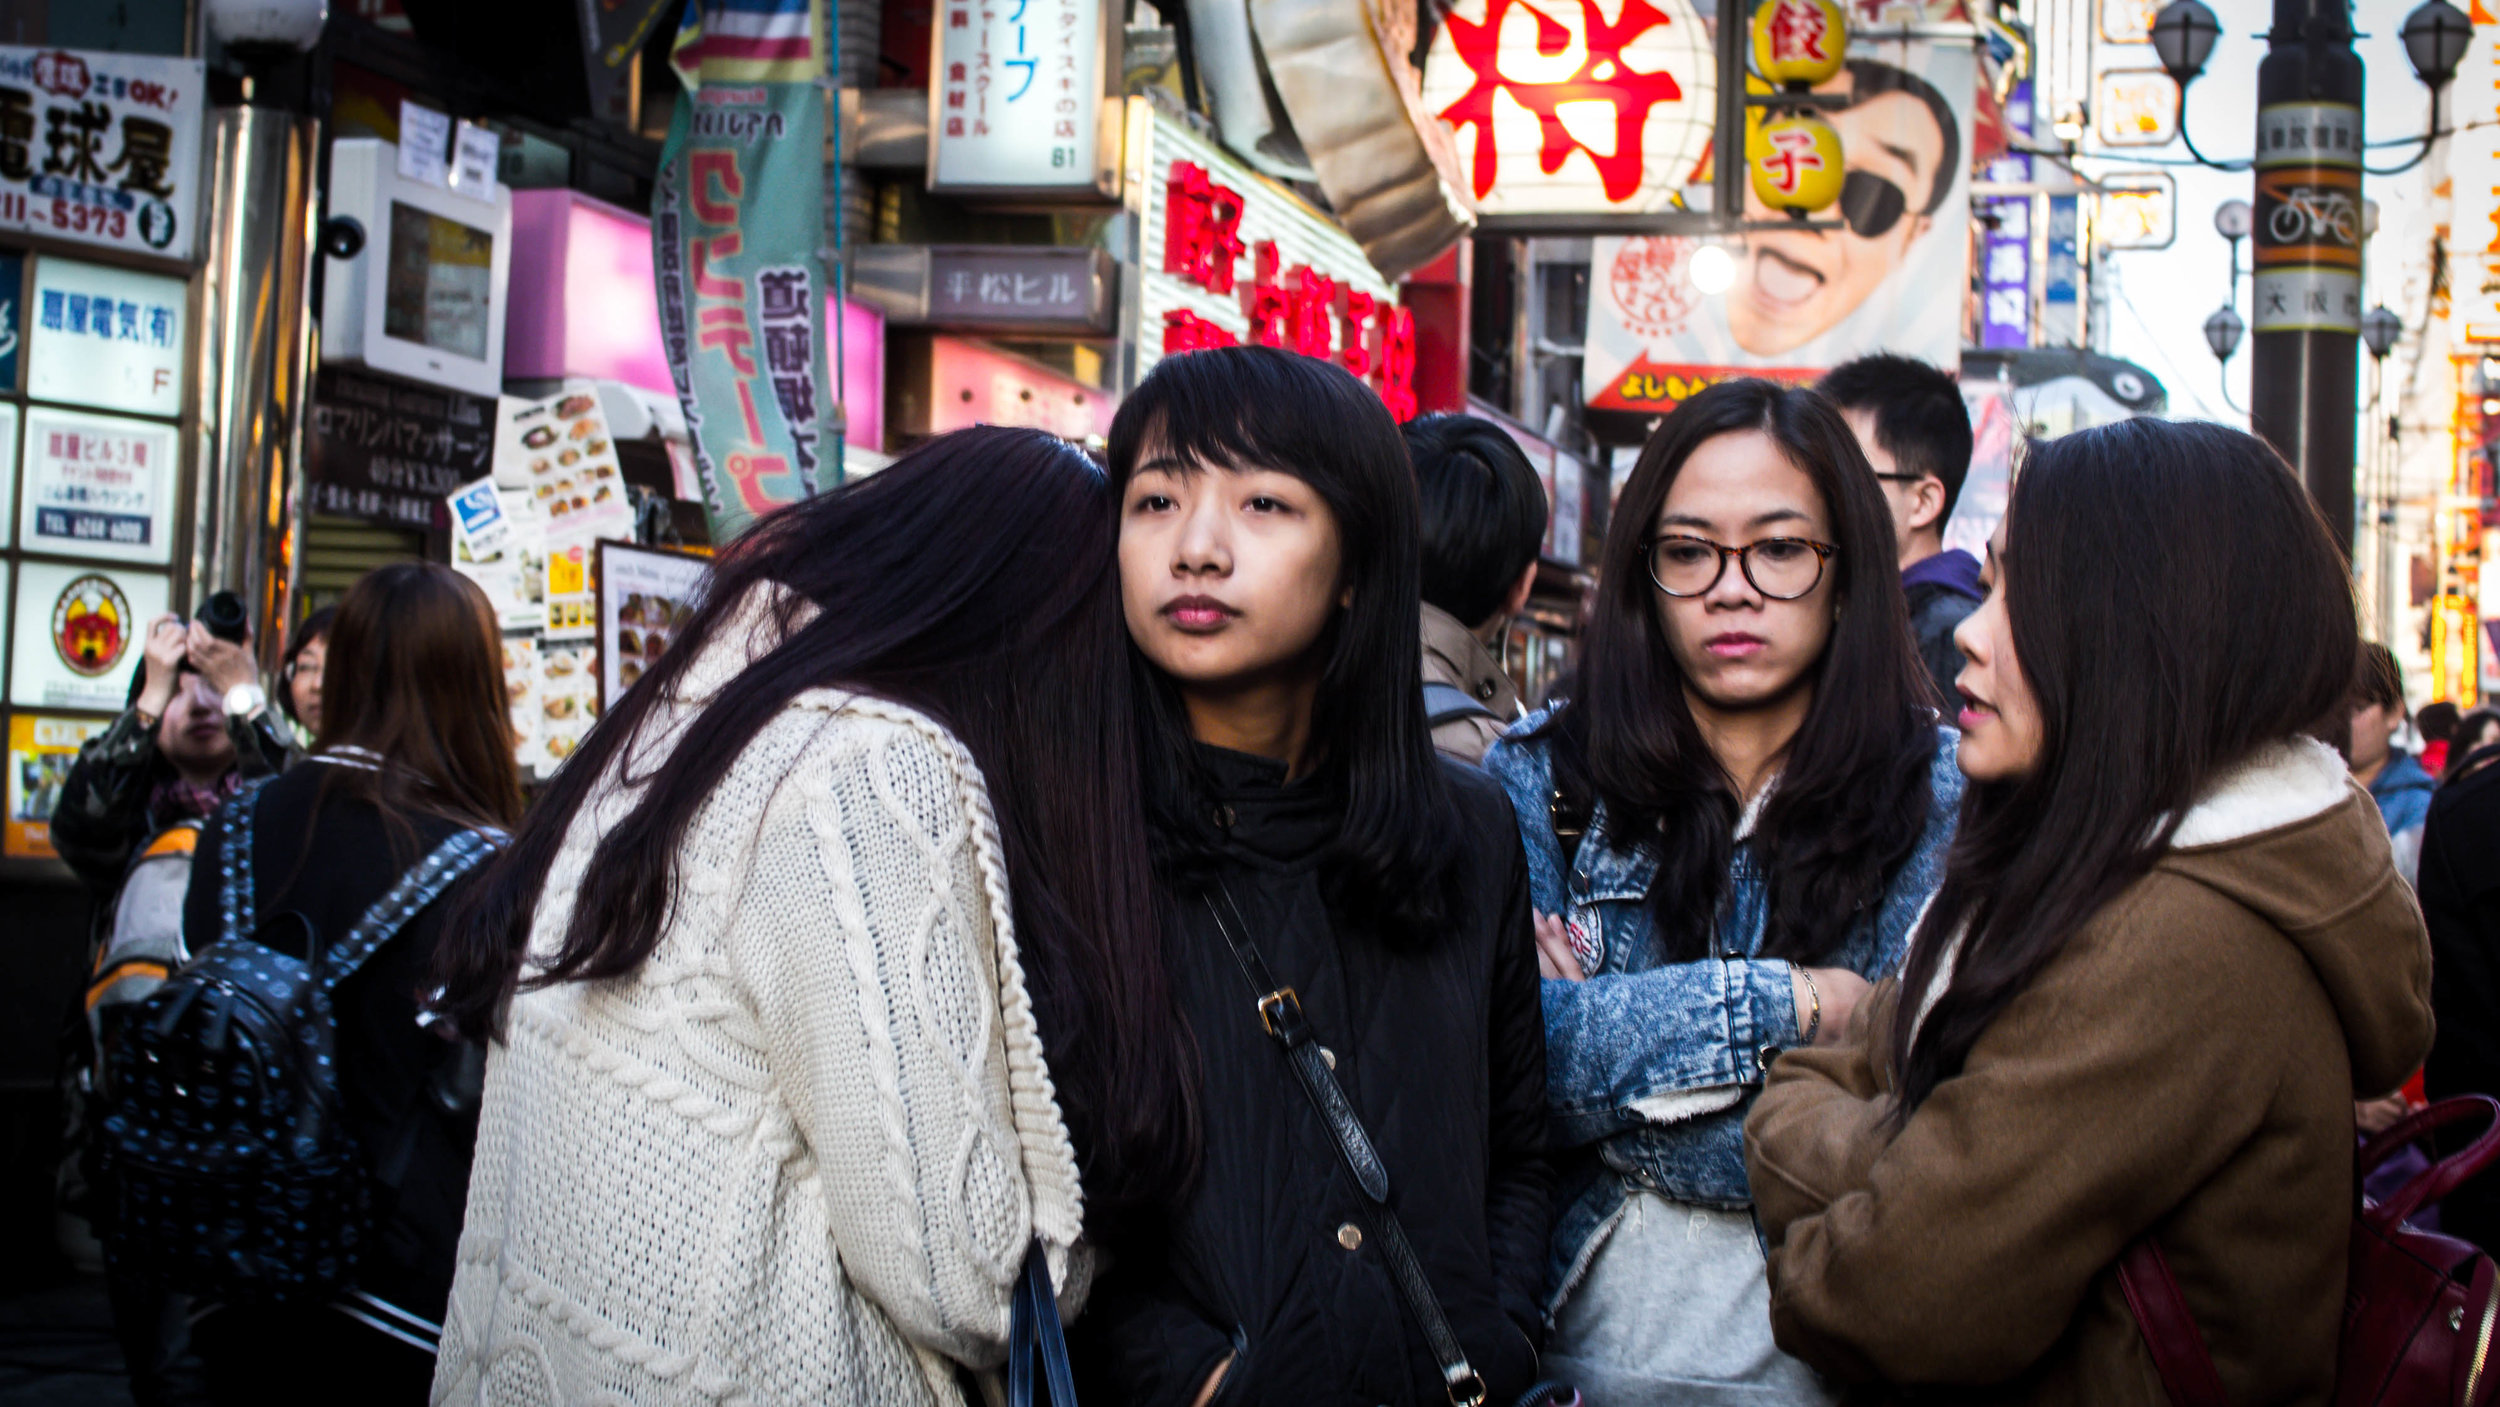 Possibly not Japanese, but the theme is the same. The compositional imperative for me was the emotional content. The girls, shoulder craving head came first, then the stronger friends support and later I noticed the contradictory happy face in the back ground to add some irony.